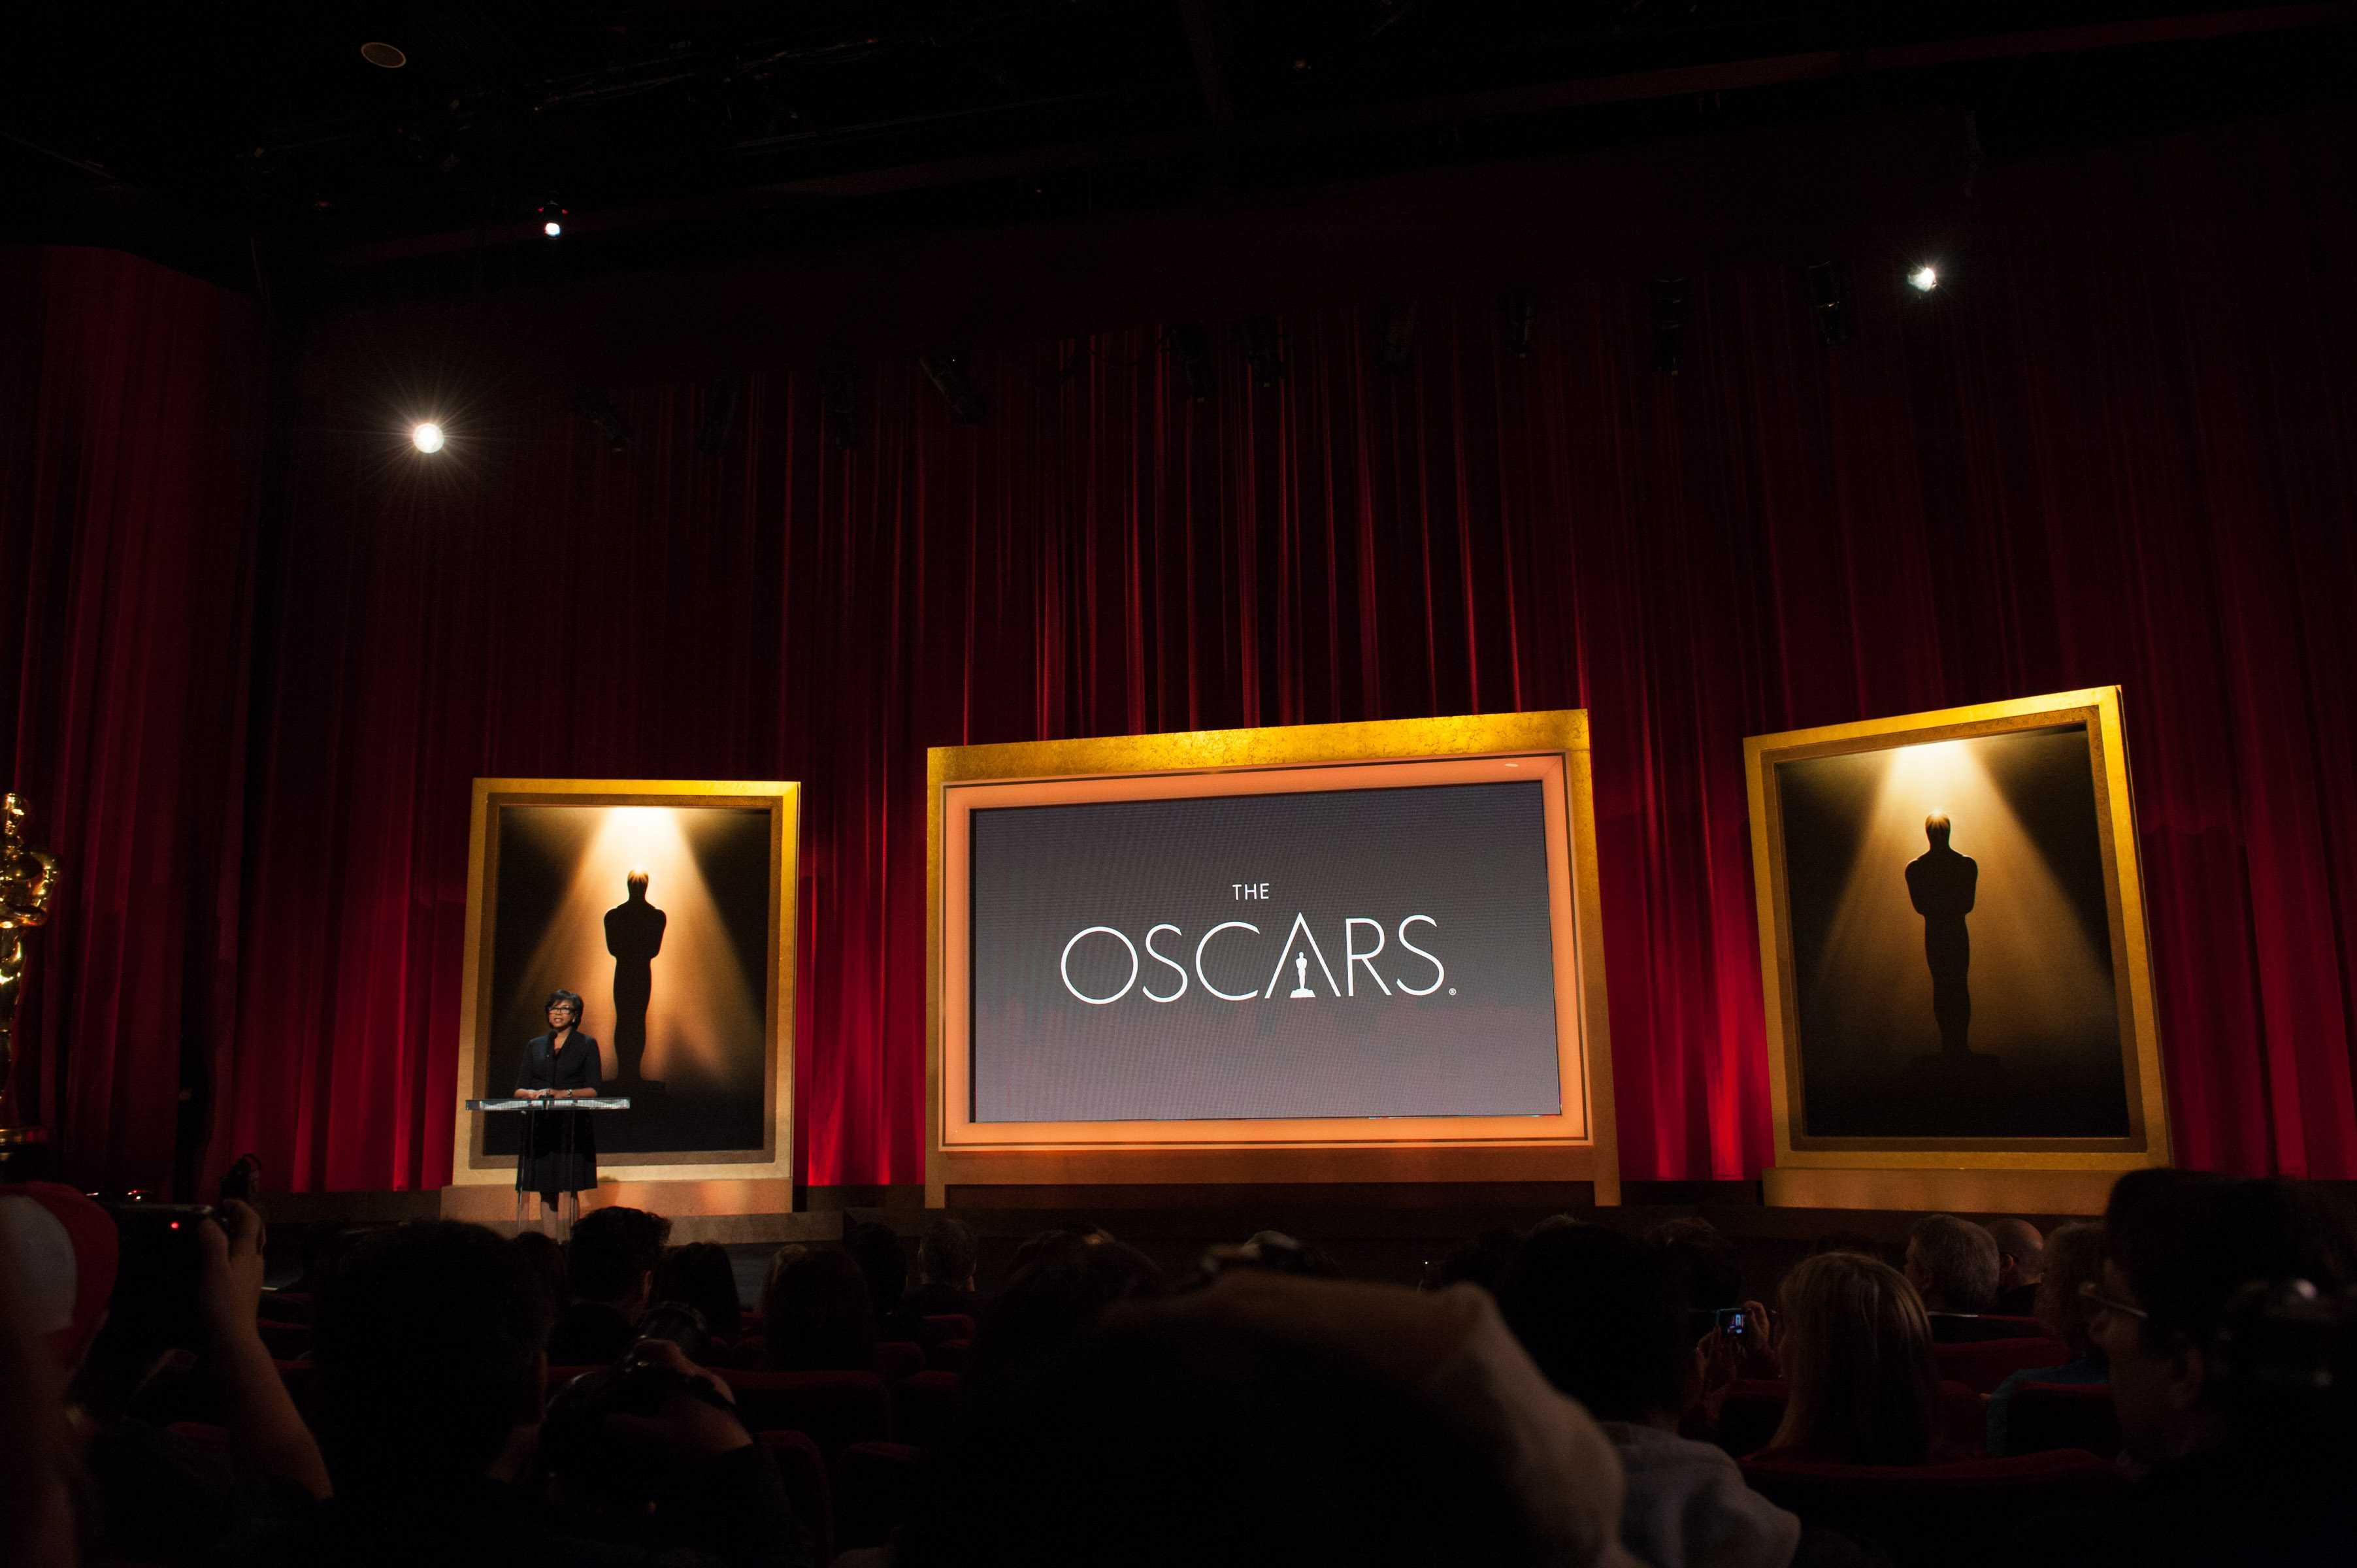 Actor Chris Hemsworth and Academy President Cheryl Boone Isaacs (pictured) announced the nominees for the 86th Annual Academy Awards in the Academy's Samuel Goldwyn Theater.